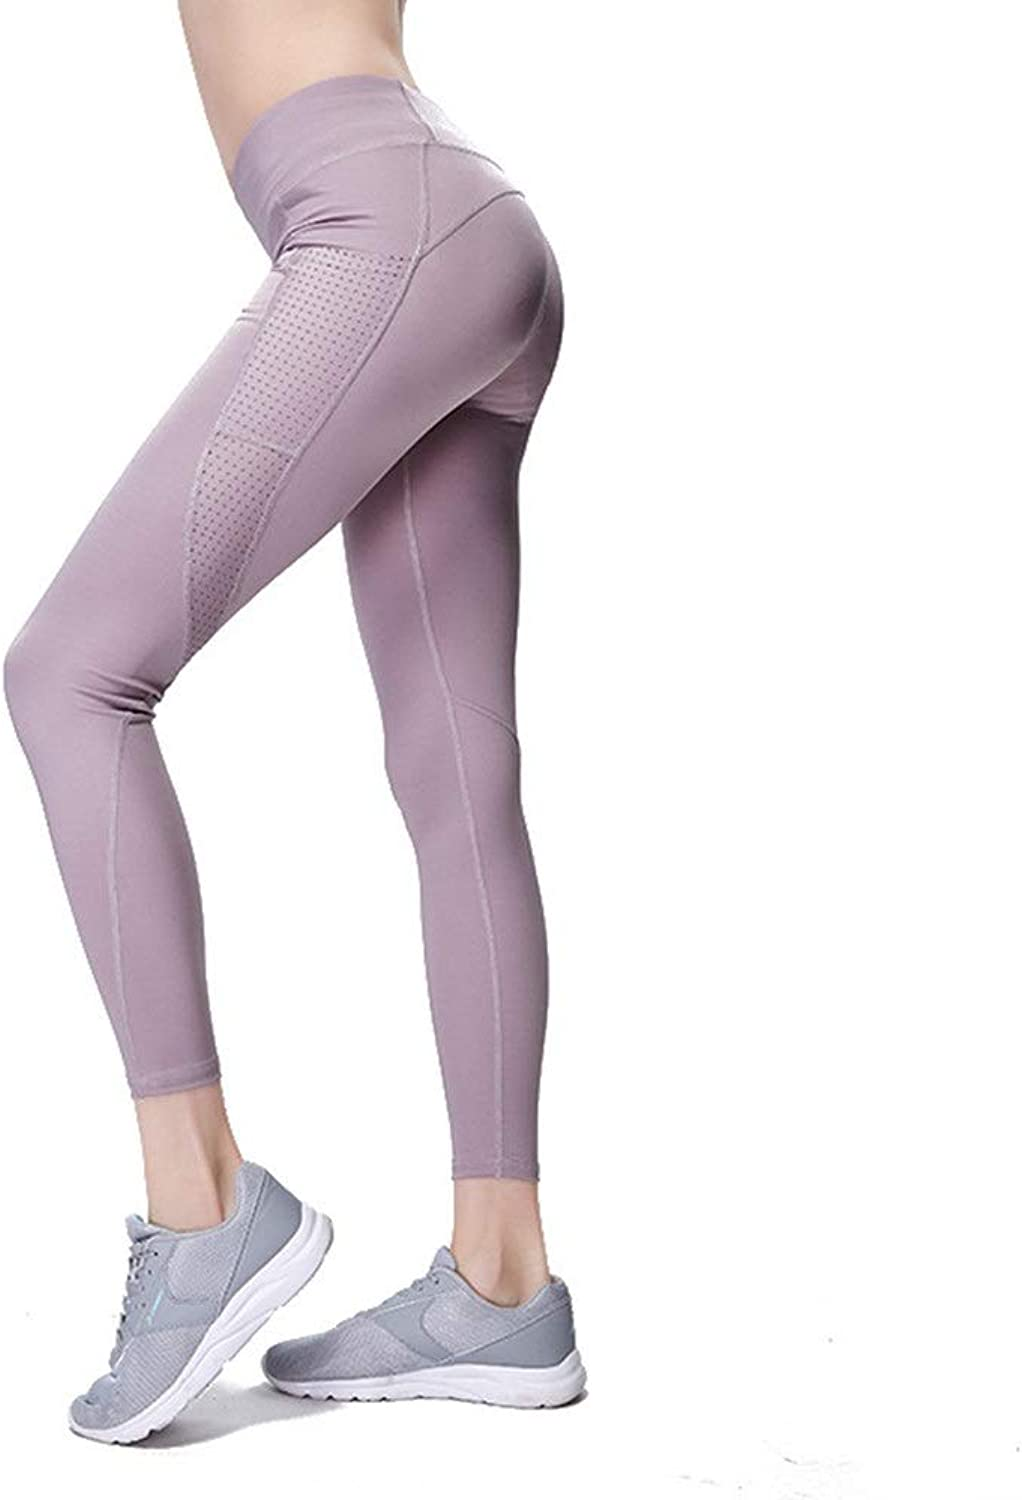 Womens Stretch Yoga Leggings Womens High WAIS Workout Leggings Yoga Pants Power Stretch Flex Tights with Pockets Workout Leggings (color   Purple, Size   M)